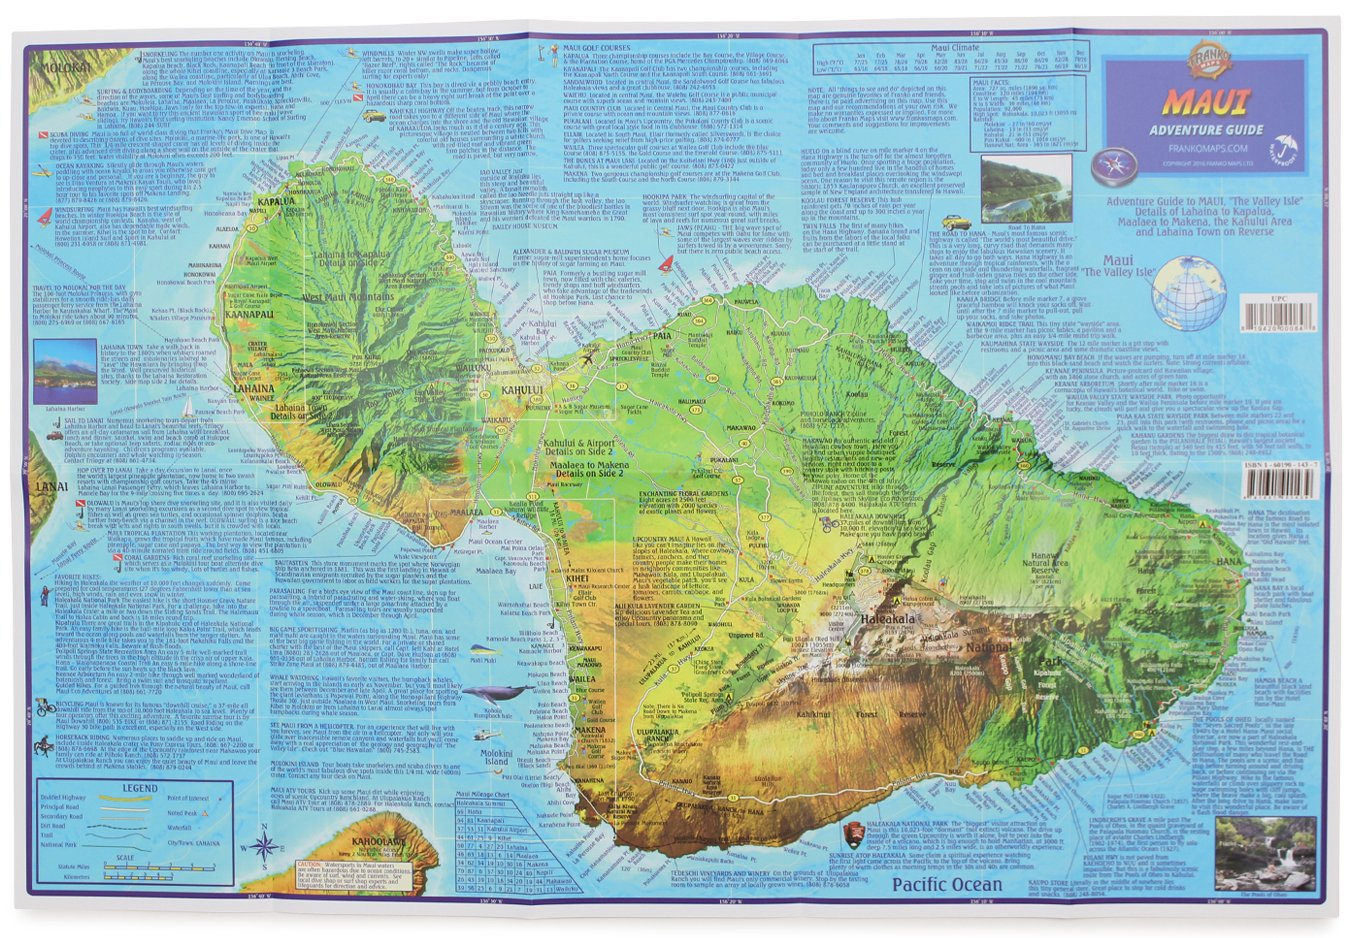 Frankos maui guide map frank m nielsen 9781601901439 amazon frankos maui guide map frank m nielsen 9781601901439 amazon books thecheapjerseys Choice Image